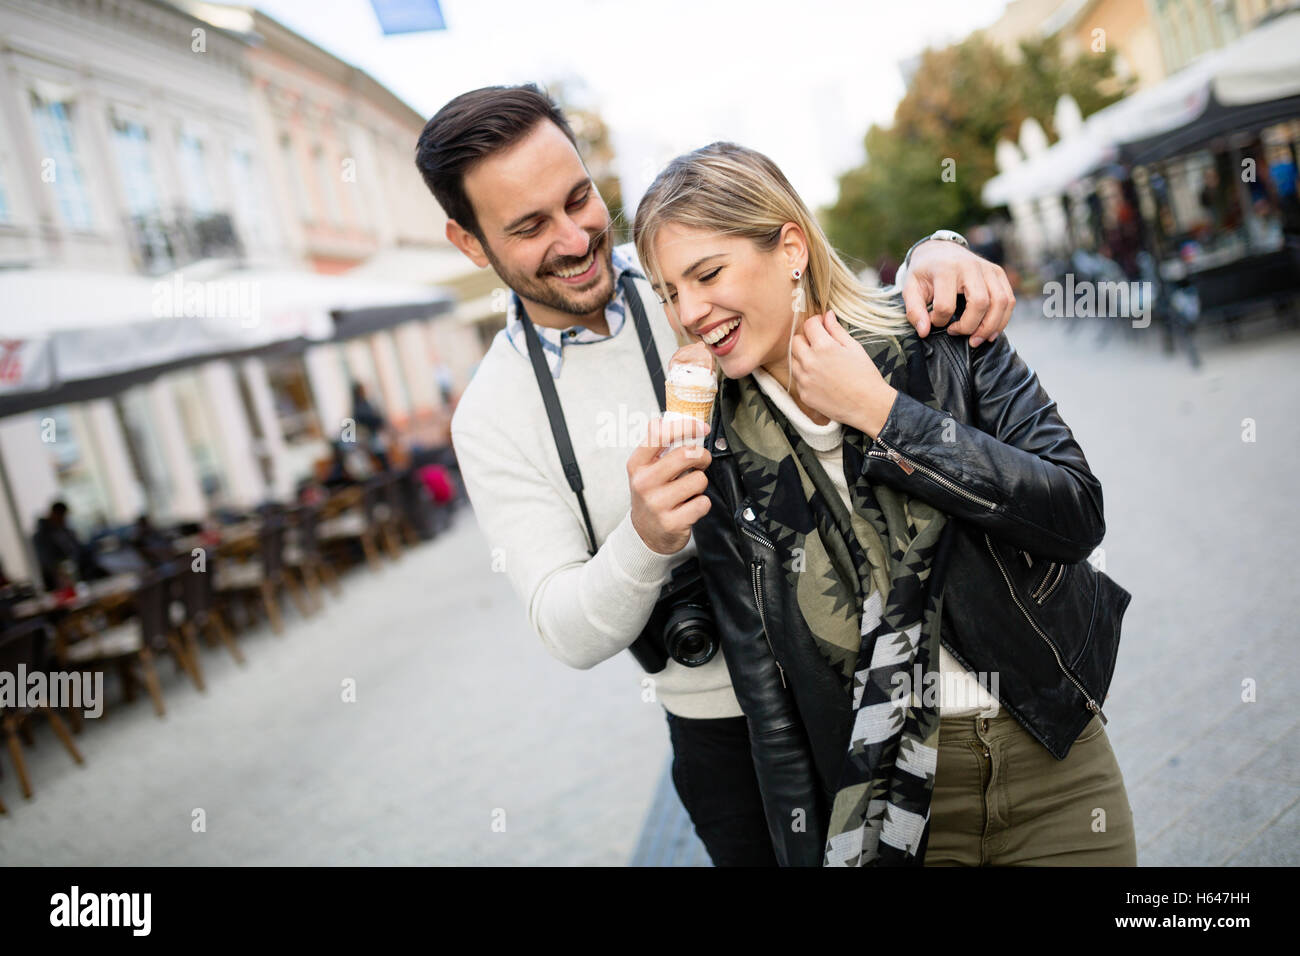 Tourist couple sharing ice cream outdoors and smiling - Stock Image